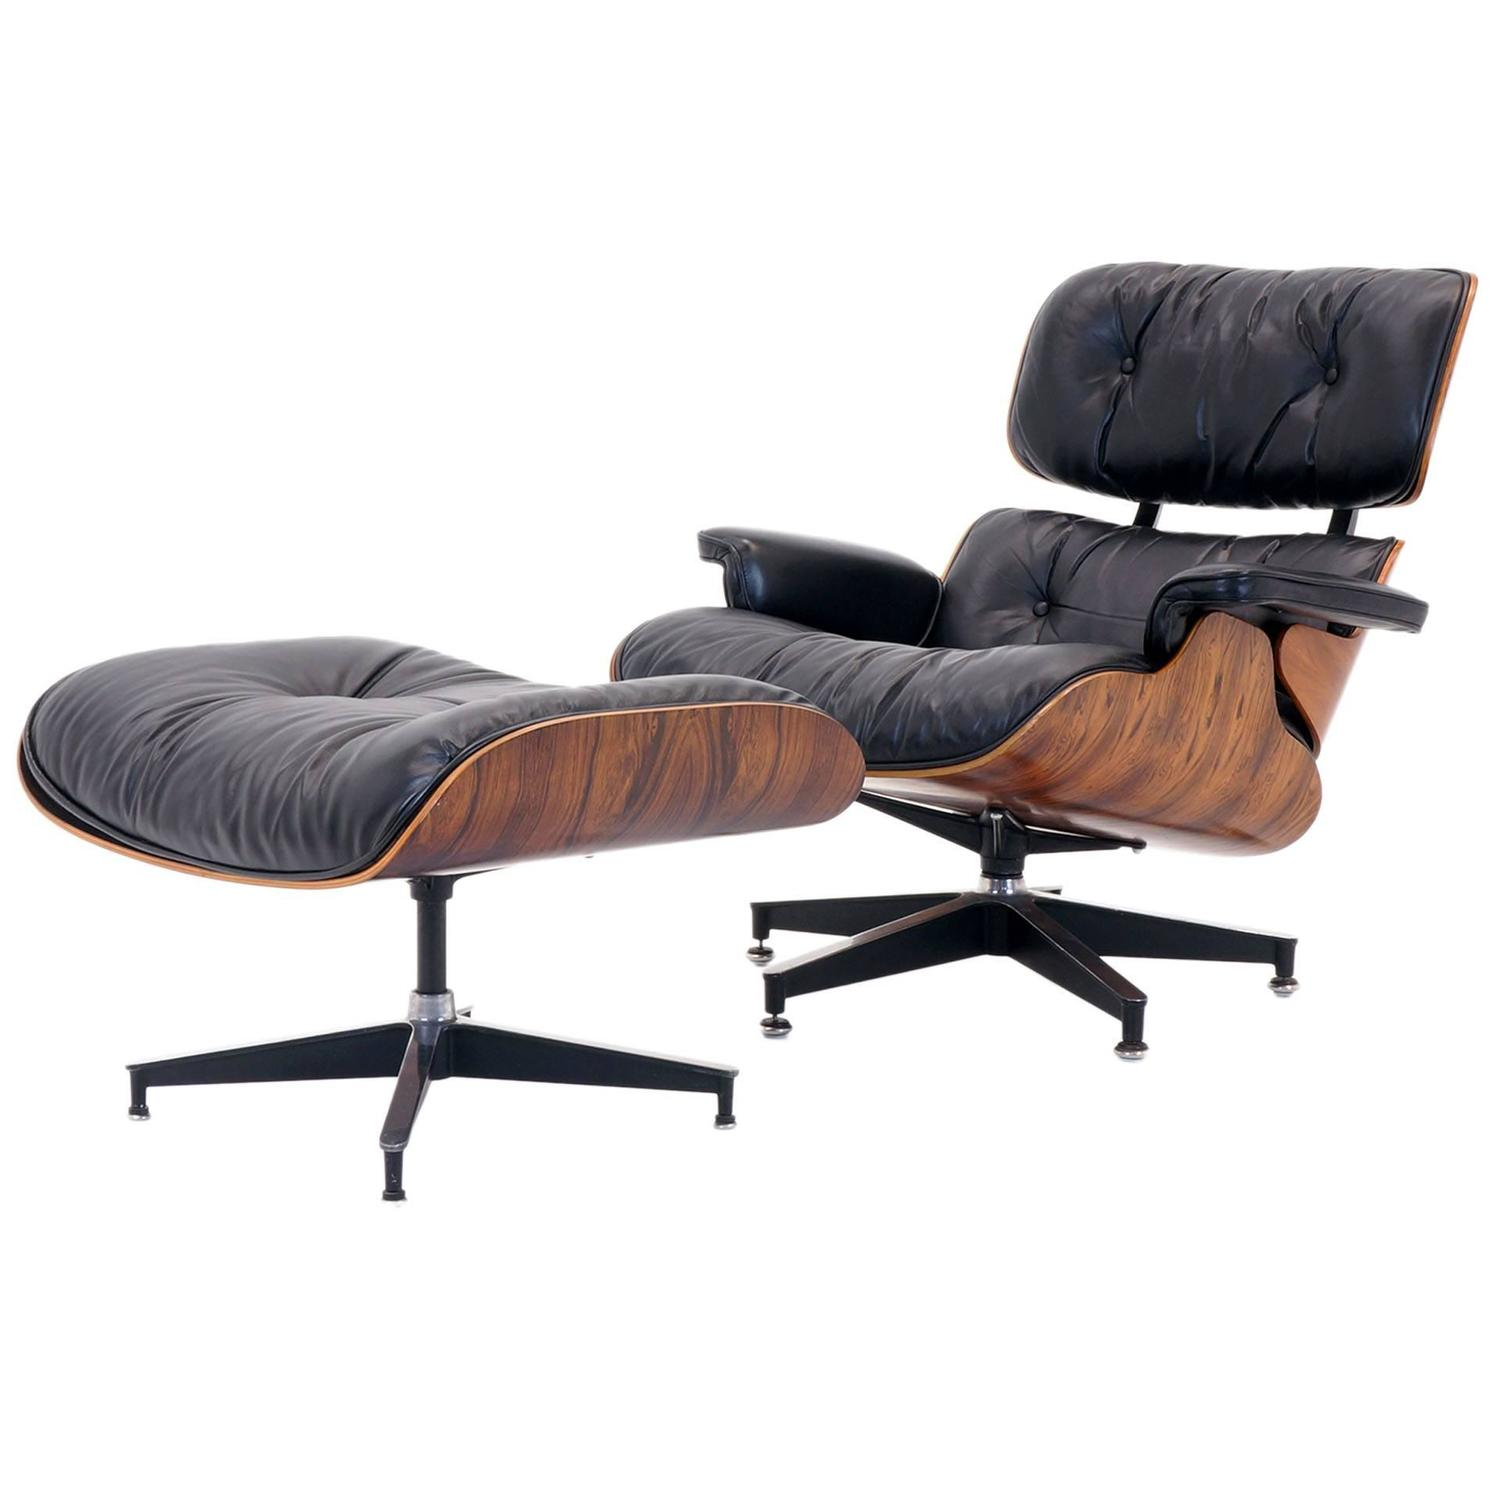 Original Eames Chair Eames Chair Original Original Eames Lounge Chair